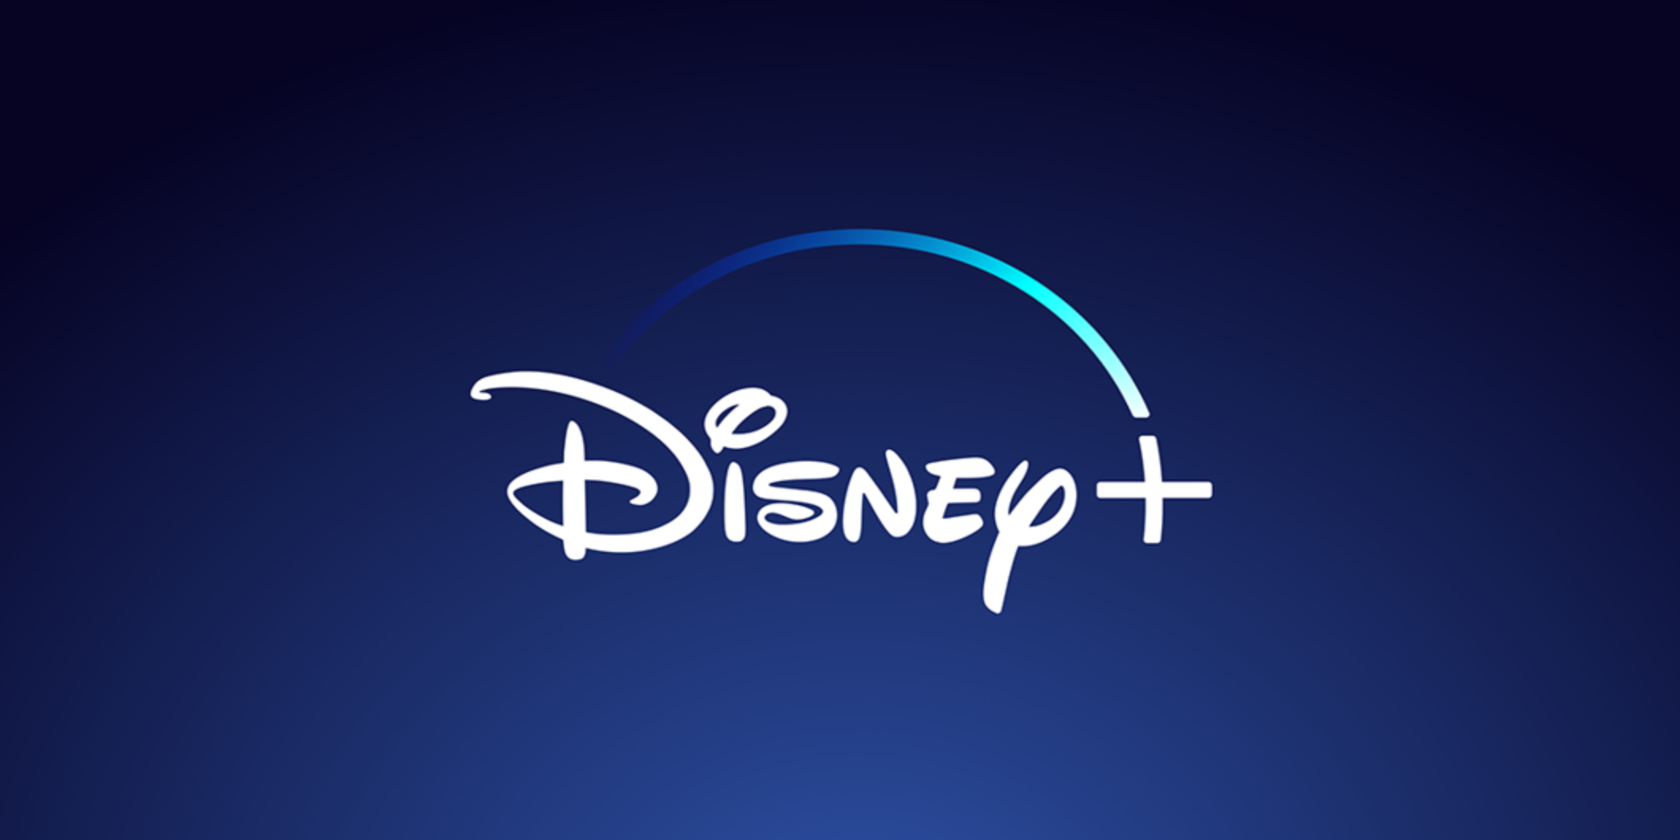 Video Streaming Services Explained: How Does Disney+ Make Money?